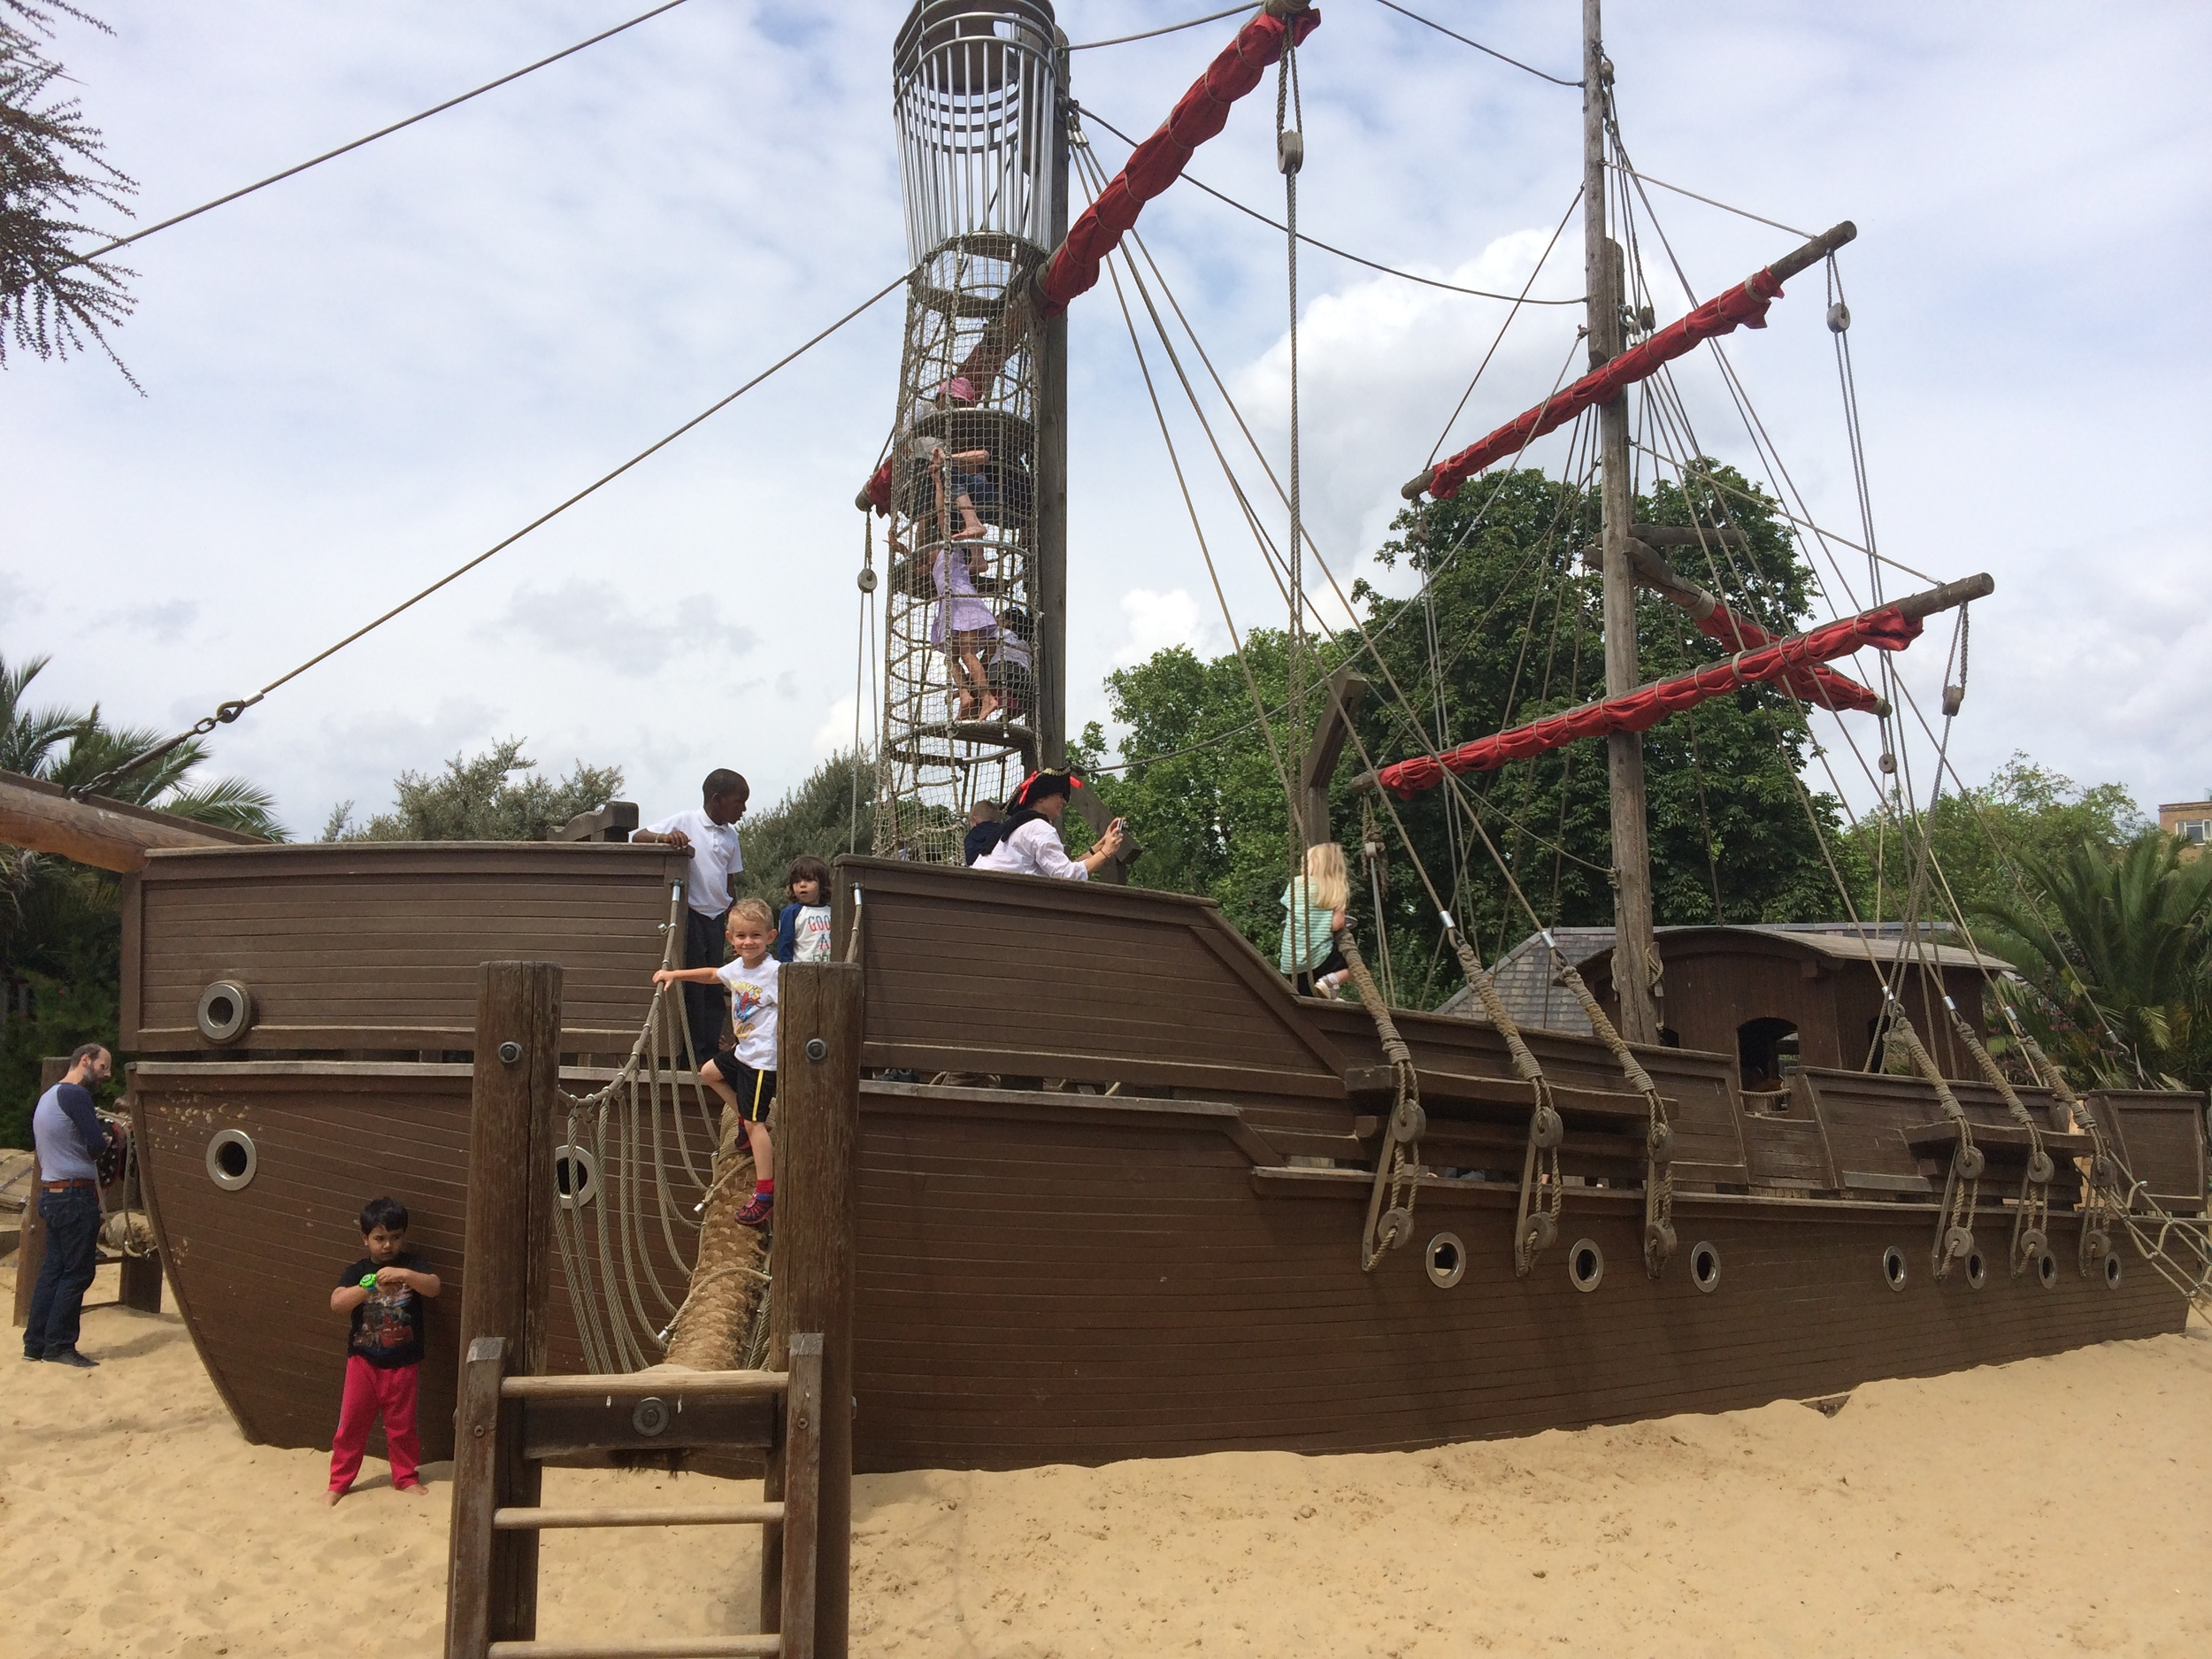 Kian on the Pirate Ship in the main section of the playground